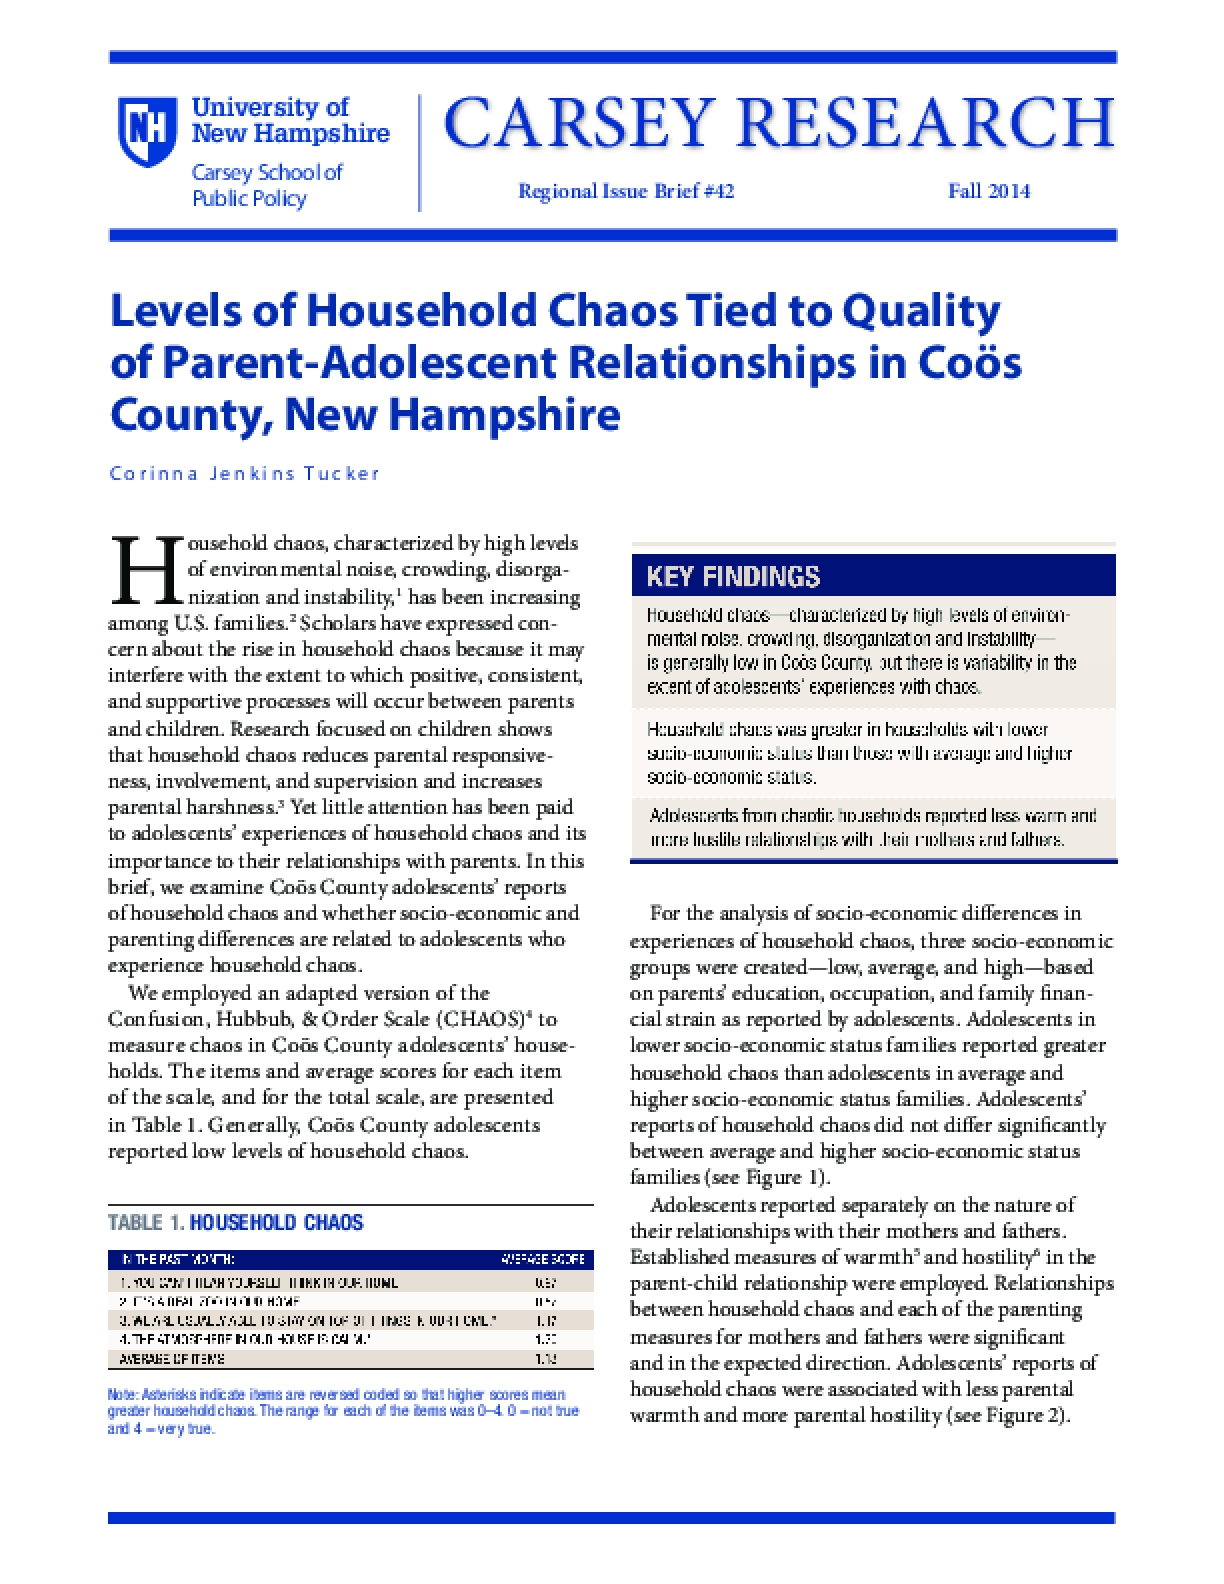 Levels of Household Chaos Tied to Quality of Parent-Adolescent Relationships in Coös County, New Hampshire